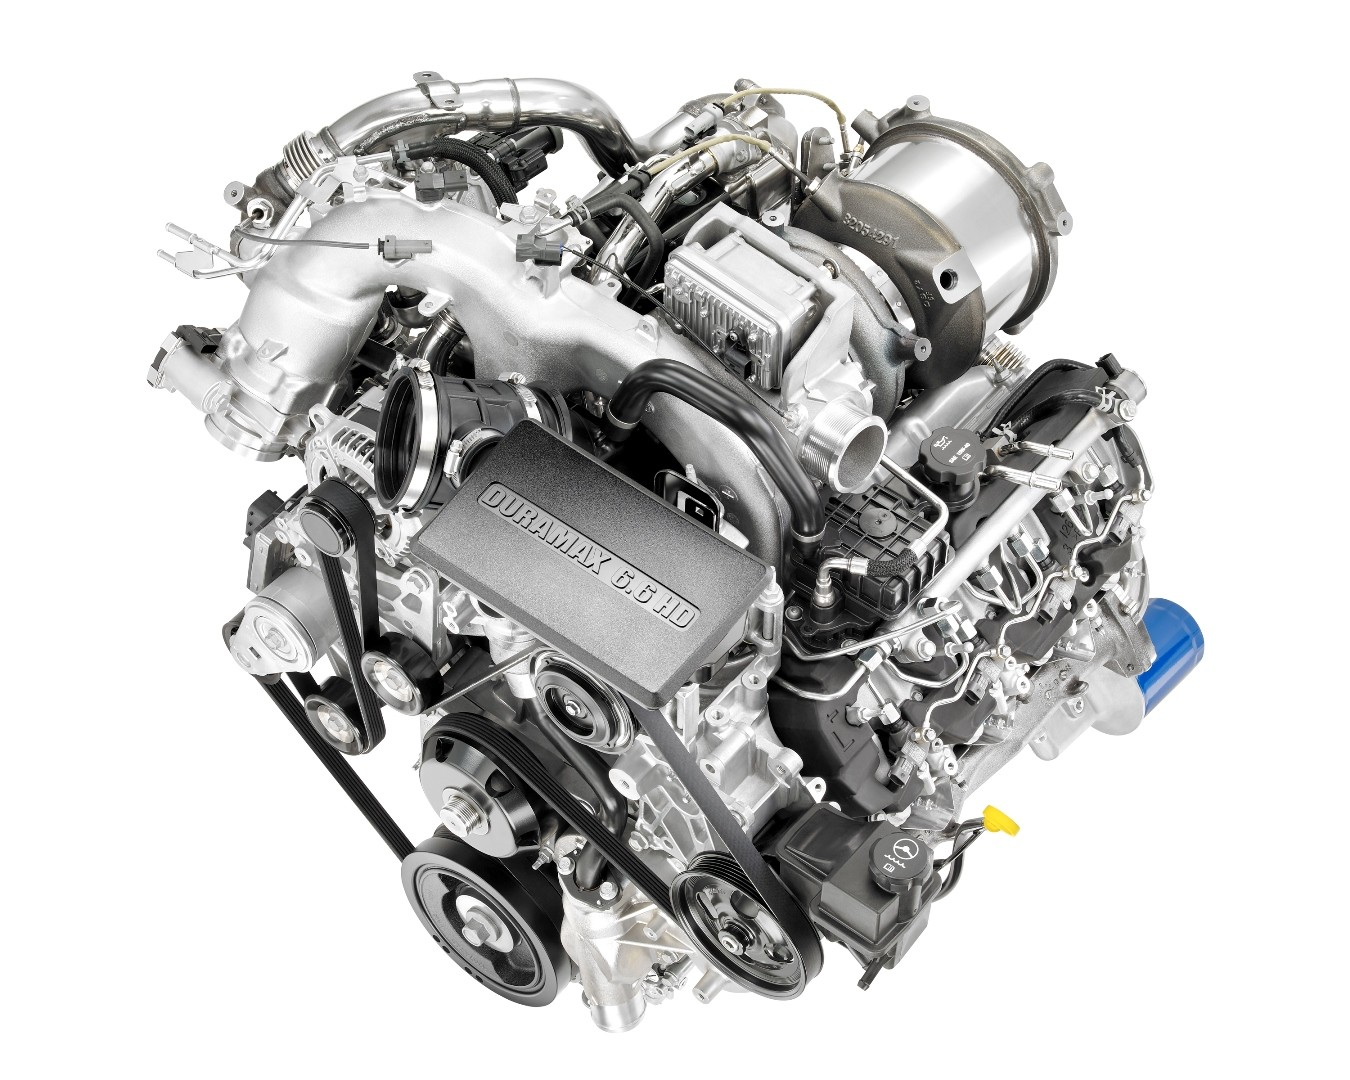 hight resolution of duramax diesel engine diagram l5p duramax diesel is go in 2017 chevrolet silverado hd